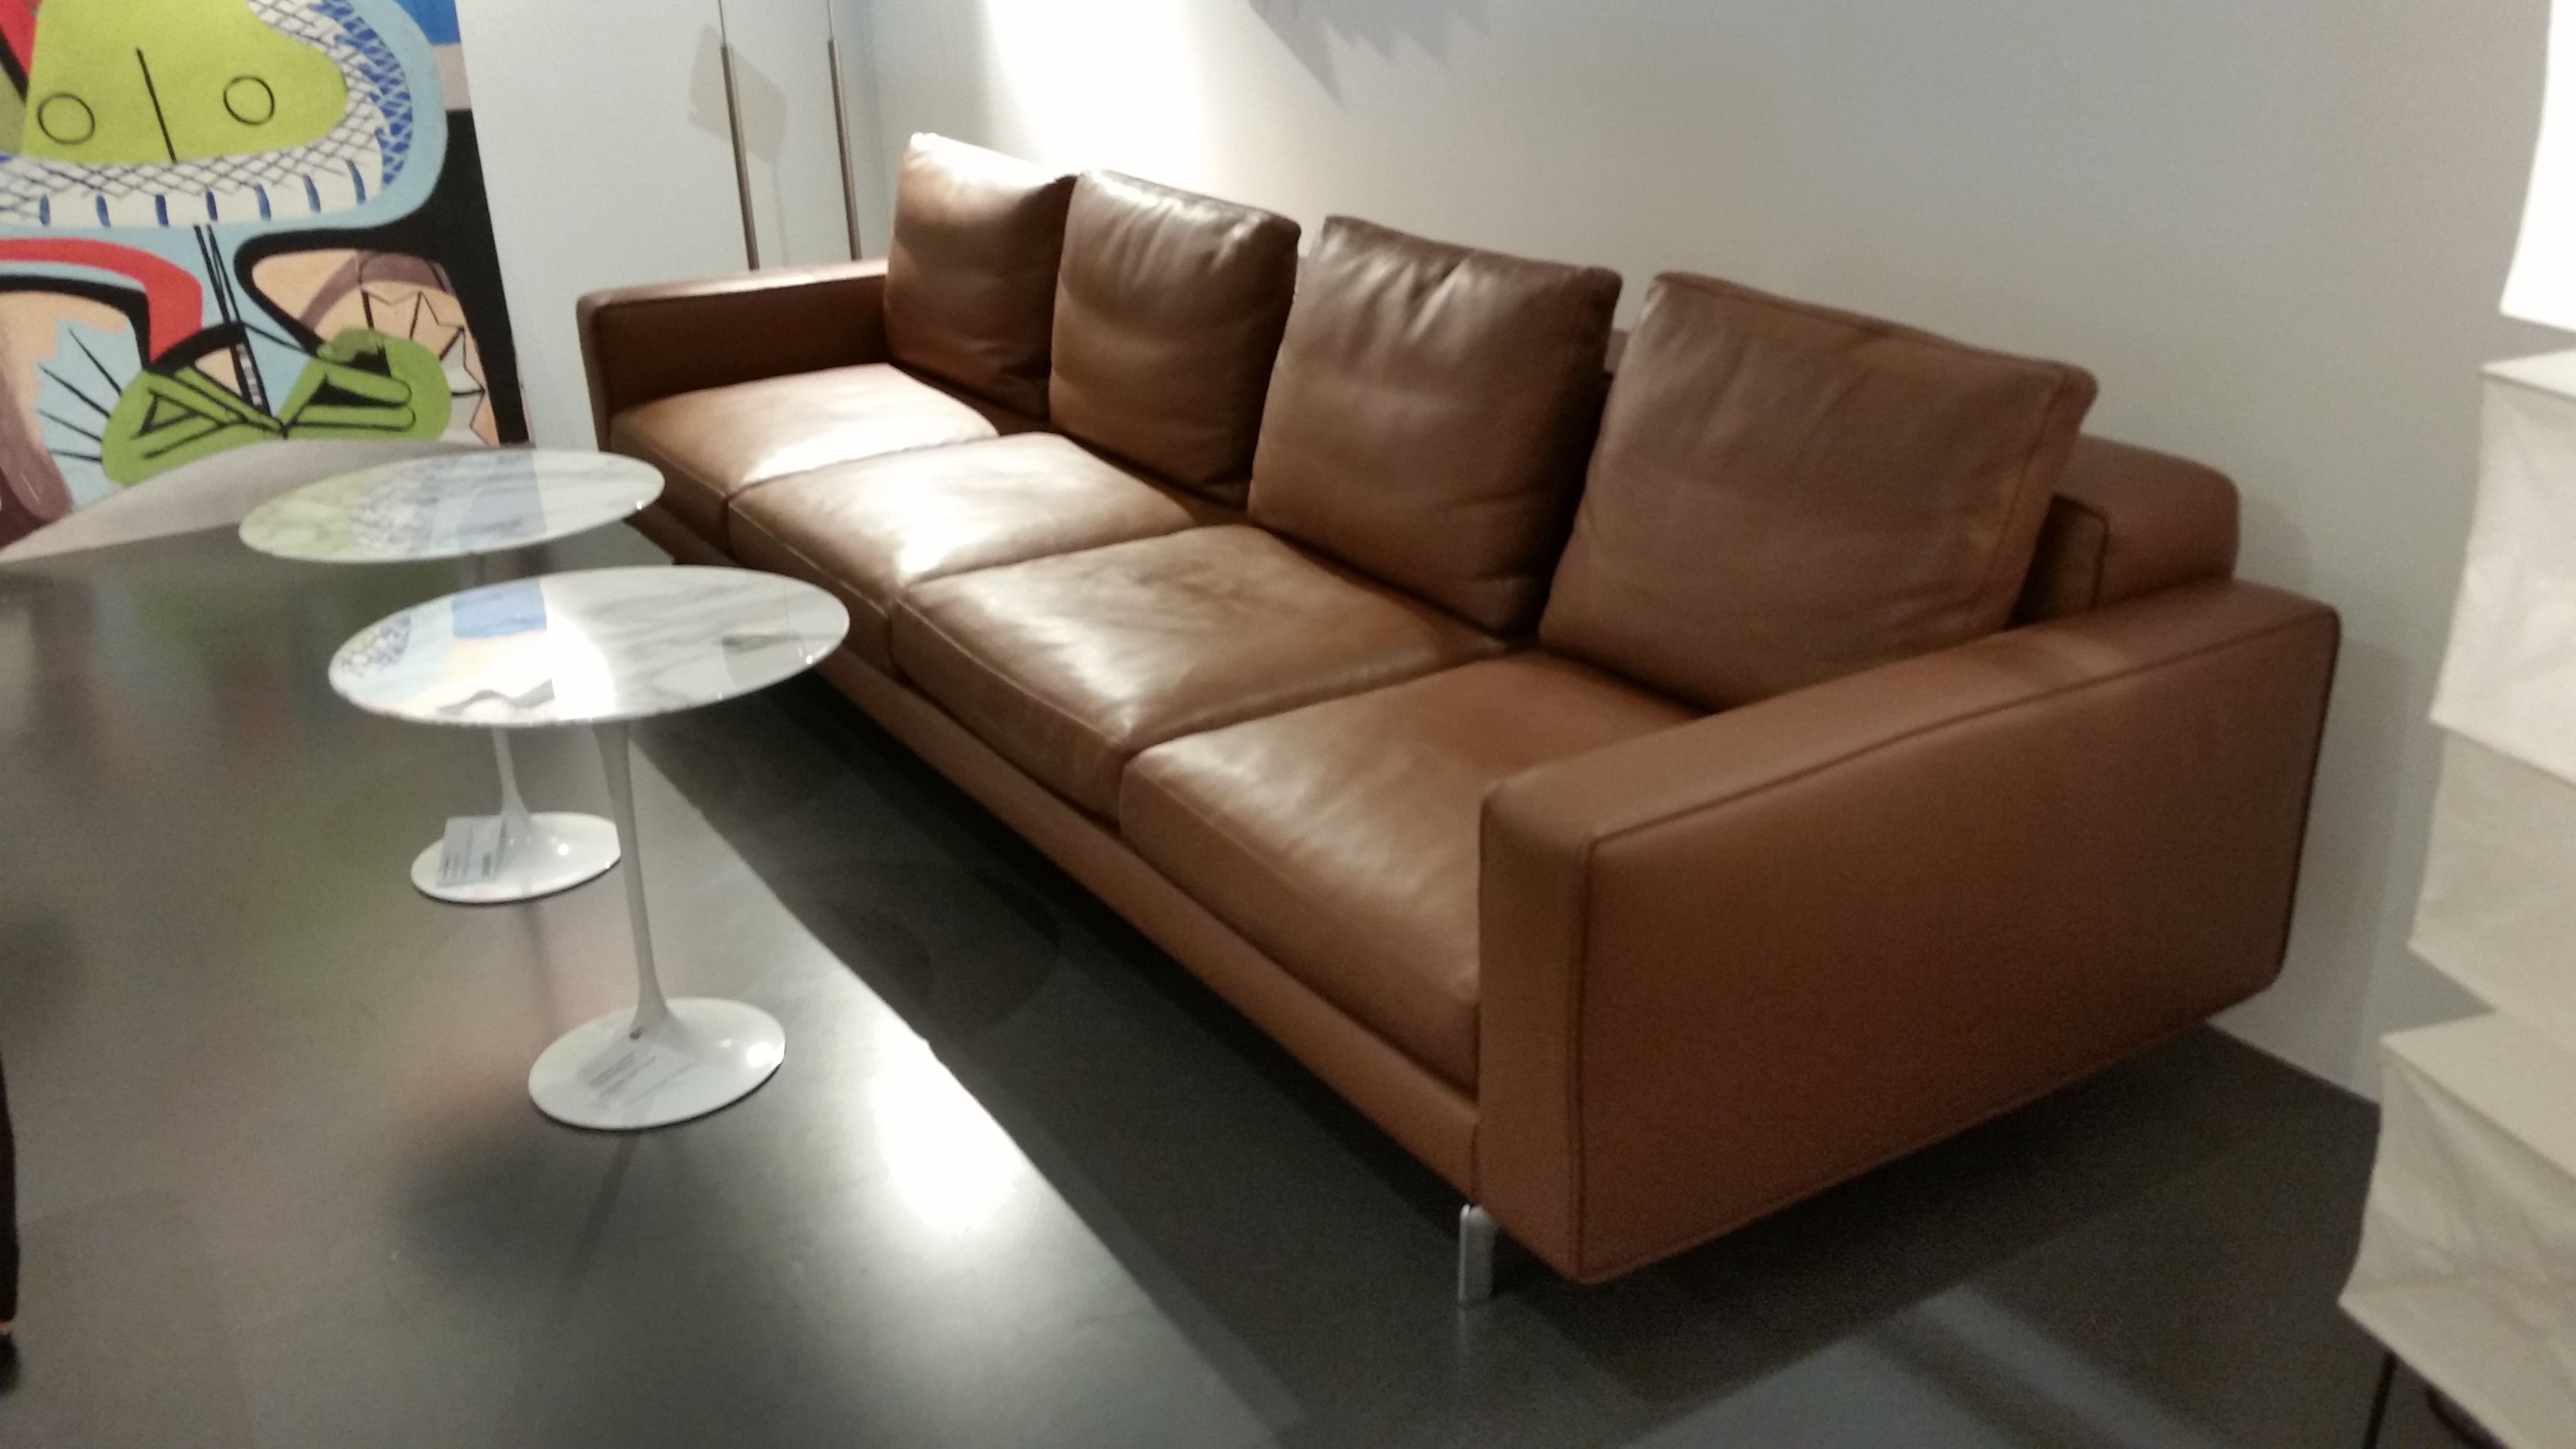 Stunning paola lenti outlet pictures for Sofa lagerverkauf